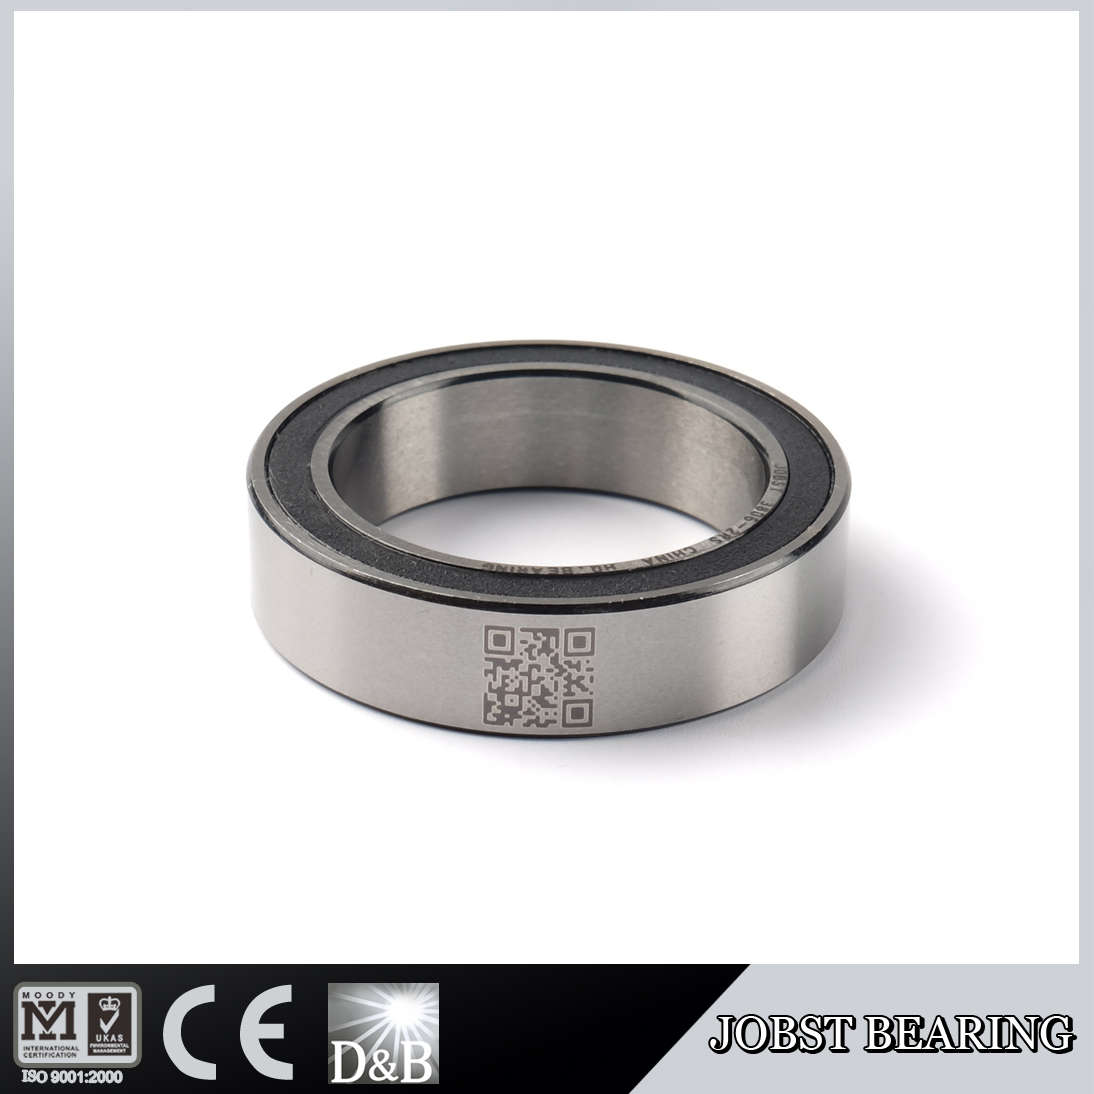 Other Bearings Supply Information Other Bearings Suppliers and…